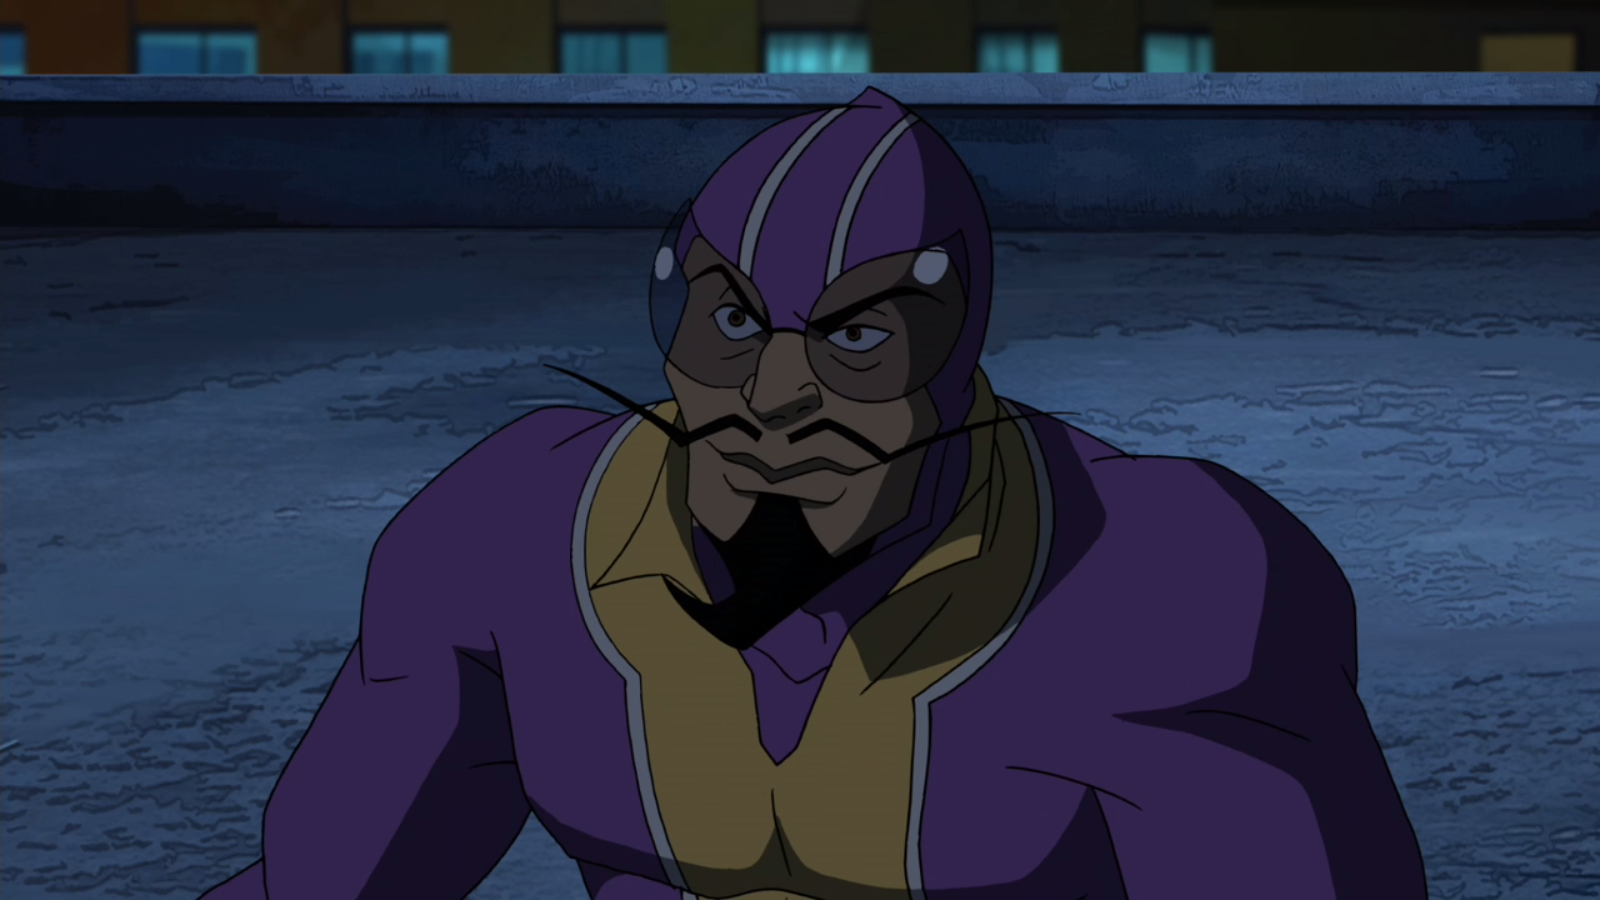 http://images2.wikia.nocookie.net/__cb20130127082446/spiderman/images/a/a9/Batroc_(Earth-TRN123).png